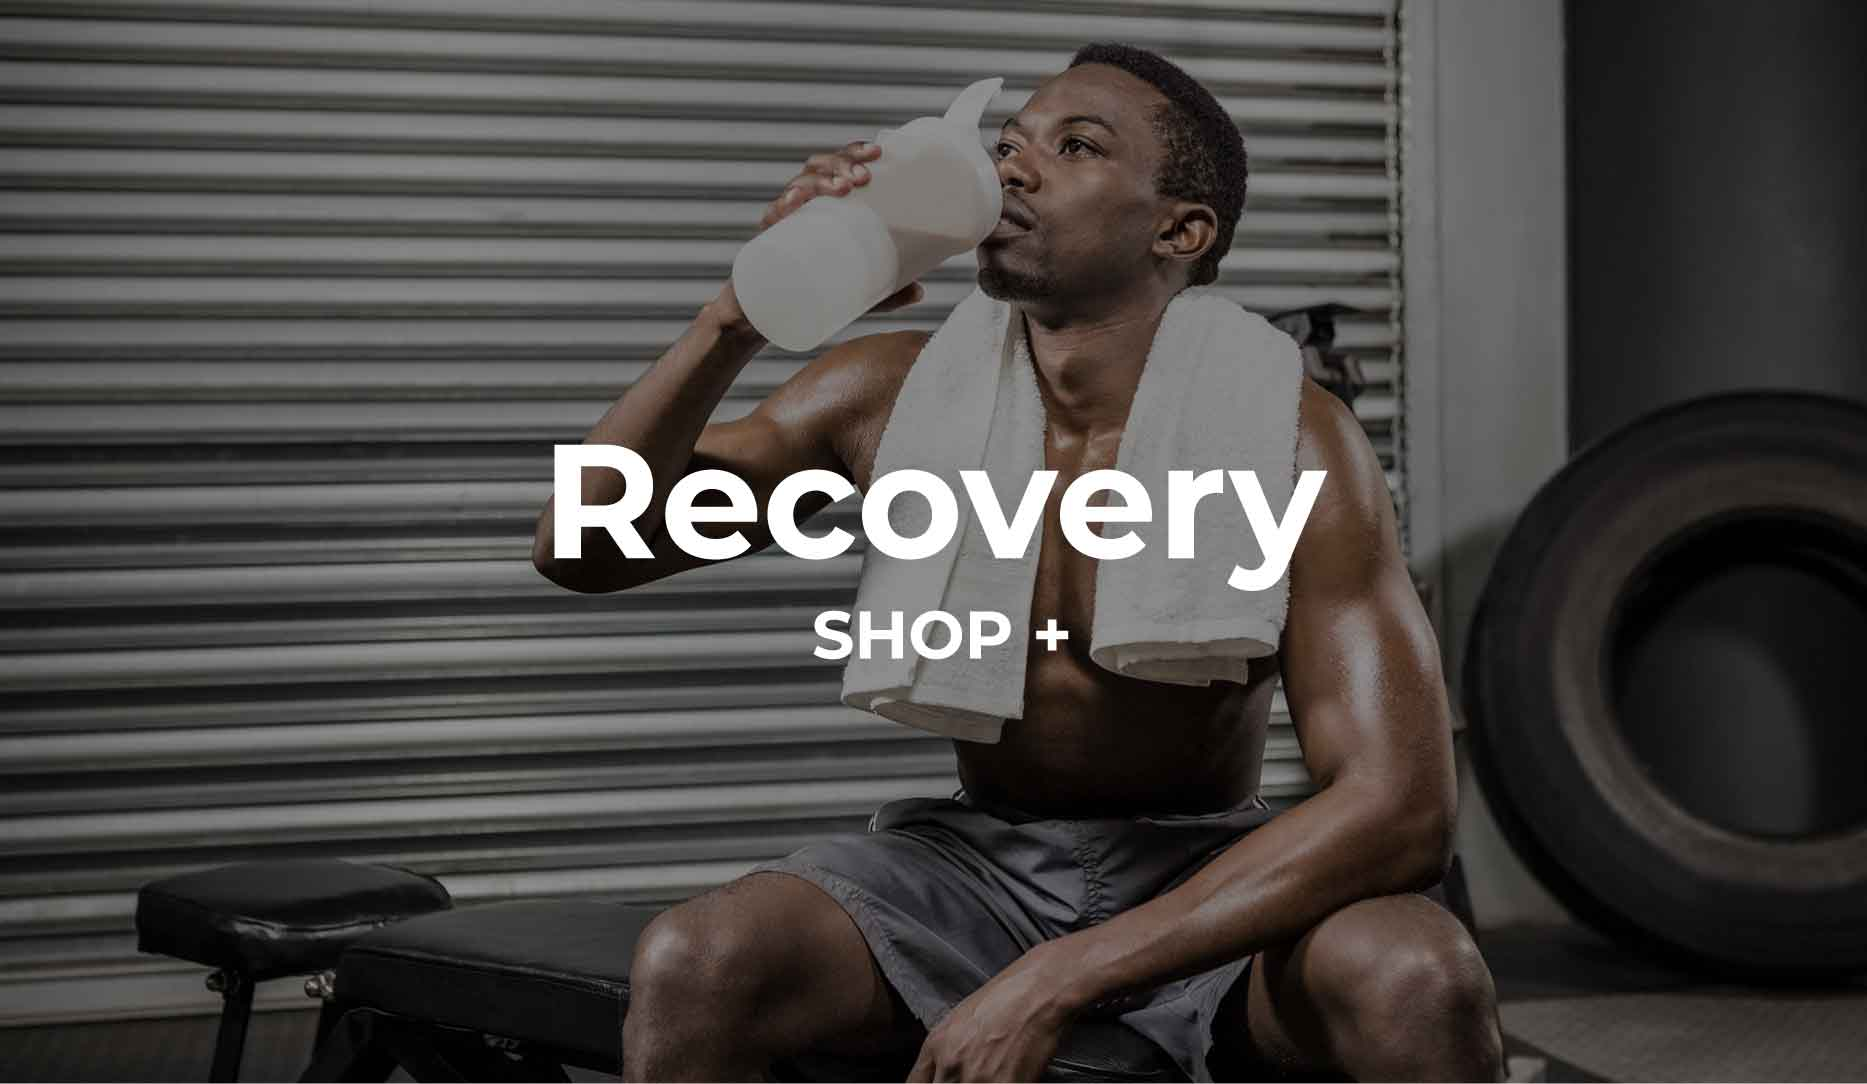 Shop recovery